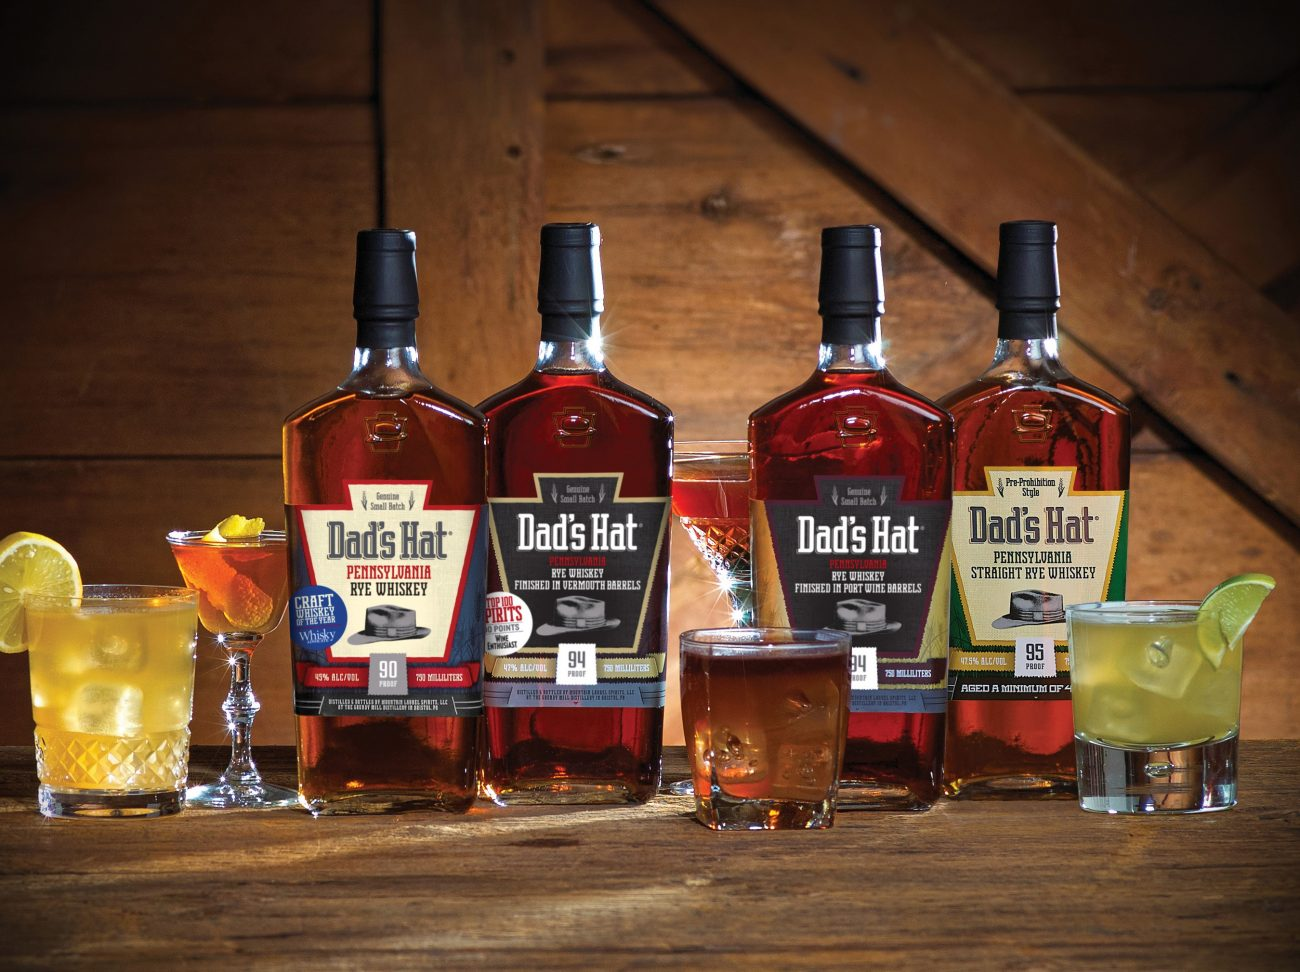 Highland Imports Launches Dad's Hat Pennsylvania Rye Whiskey